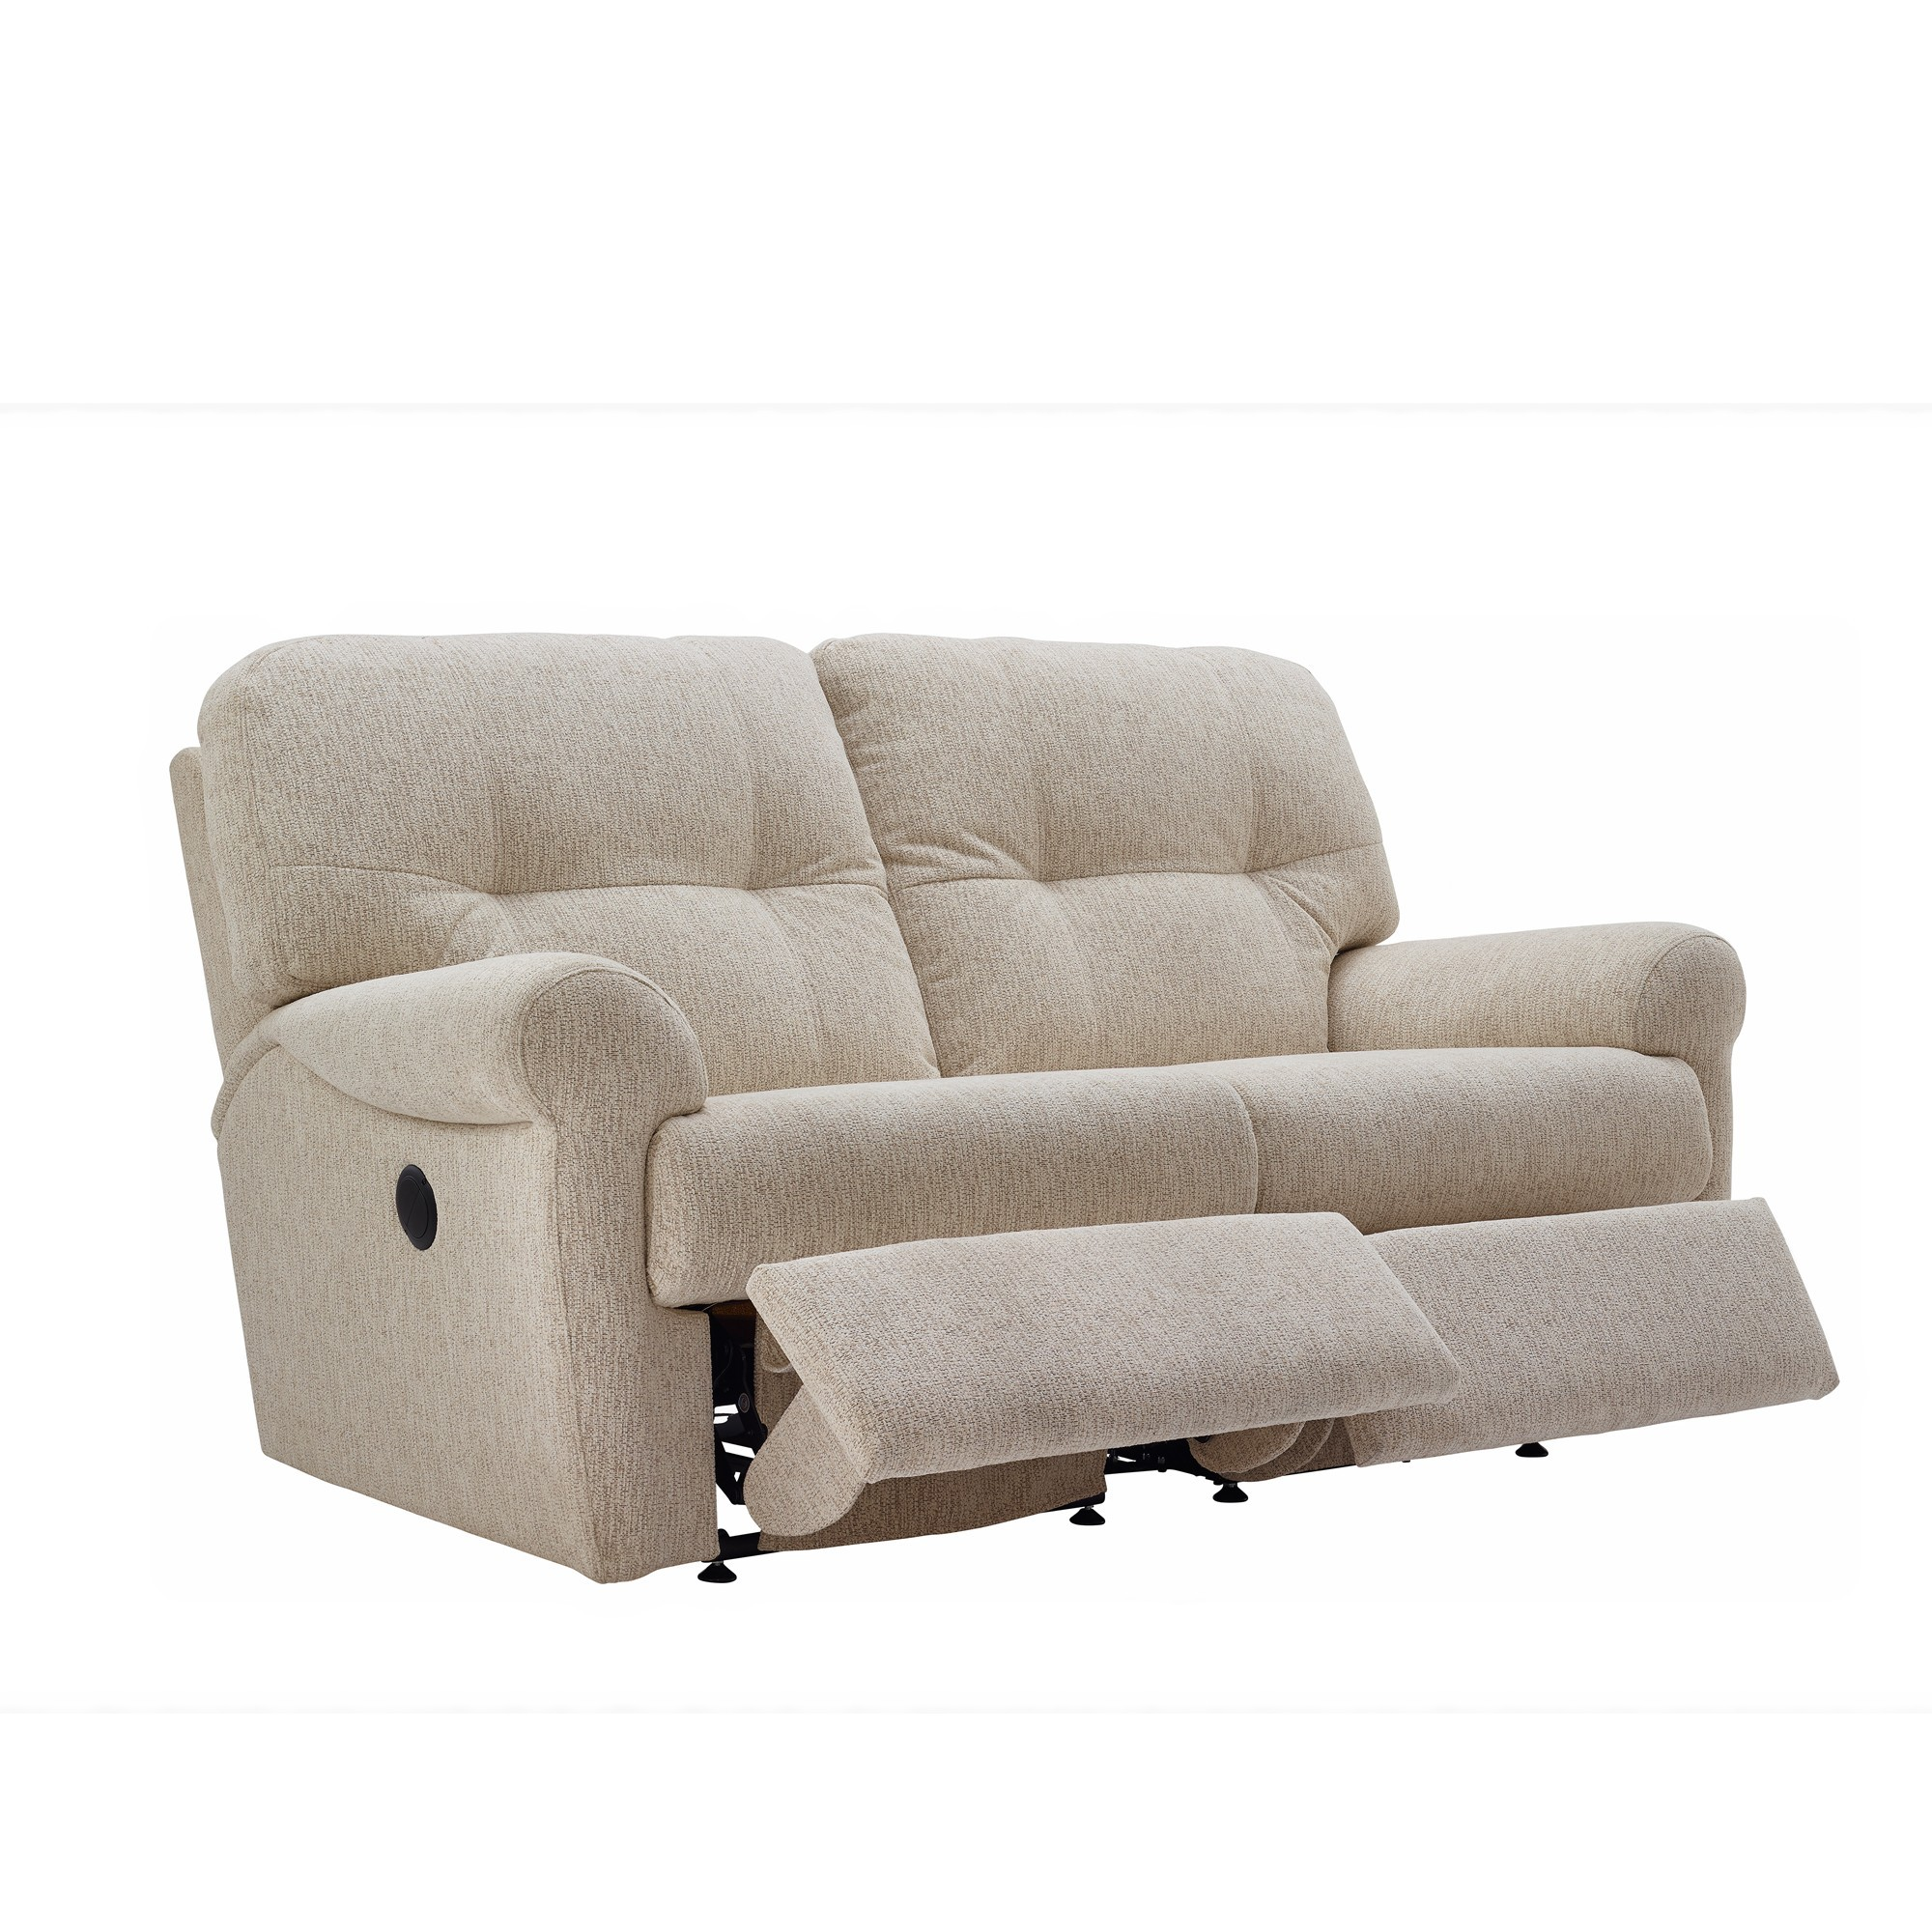 G plan winslet 2 seater double power recliner sofa for Double leather sofa